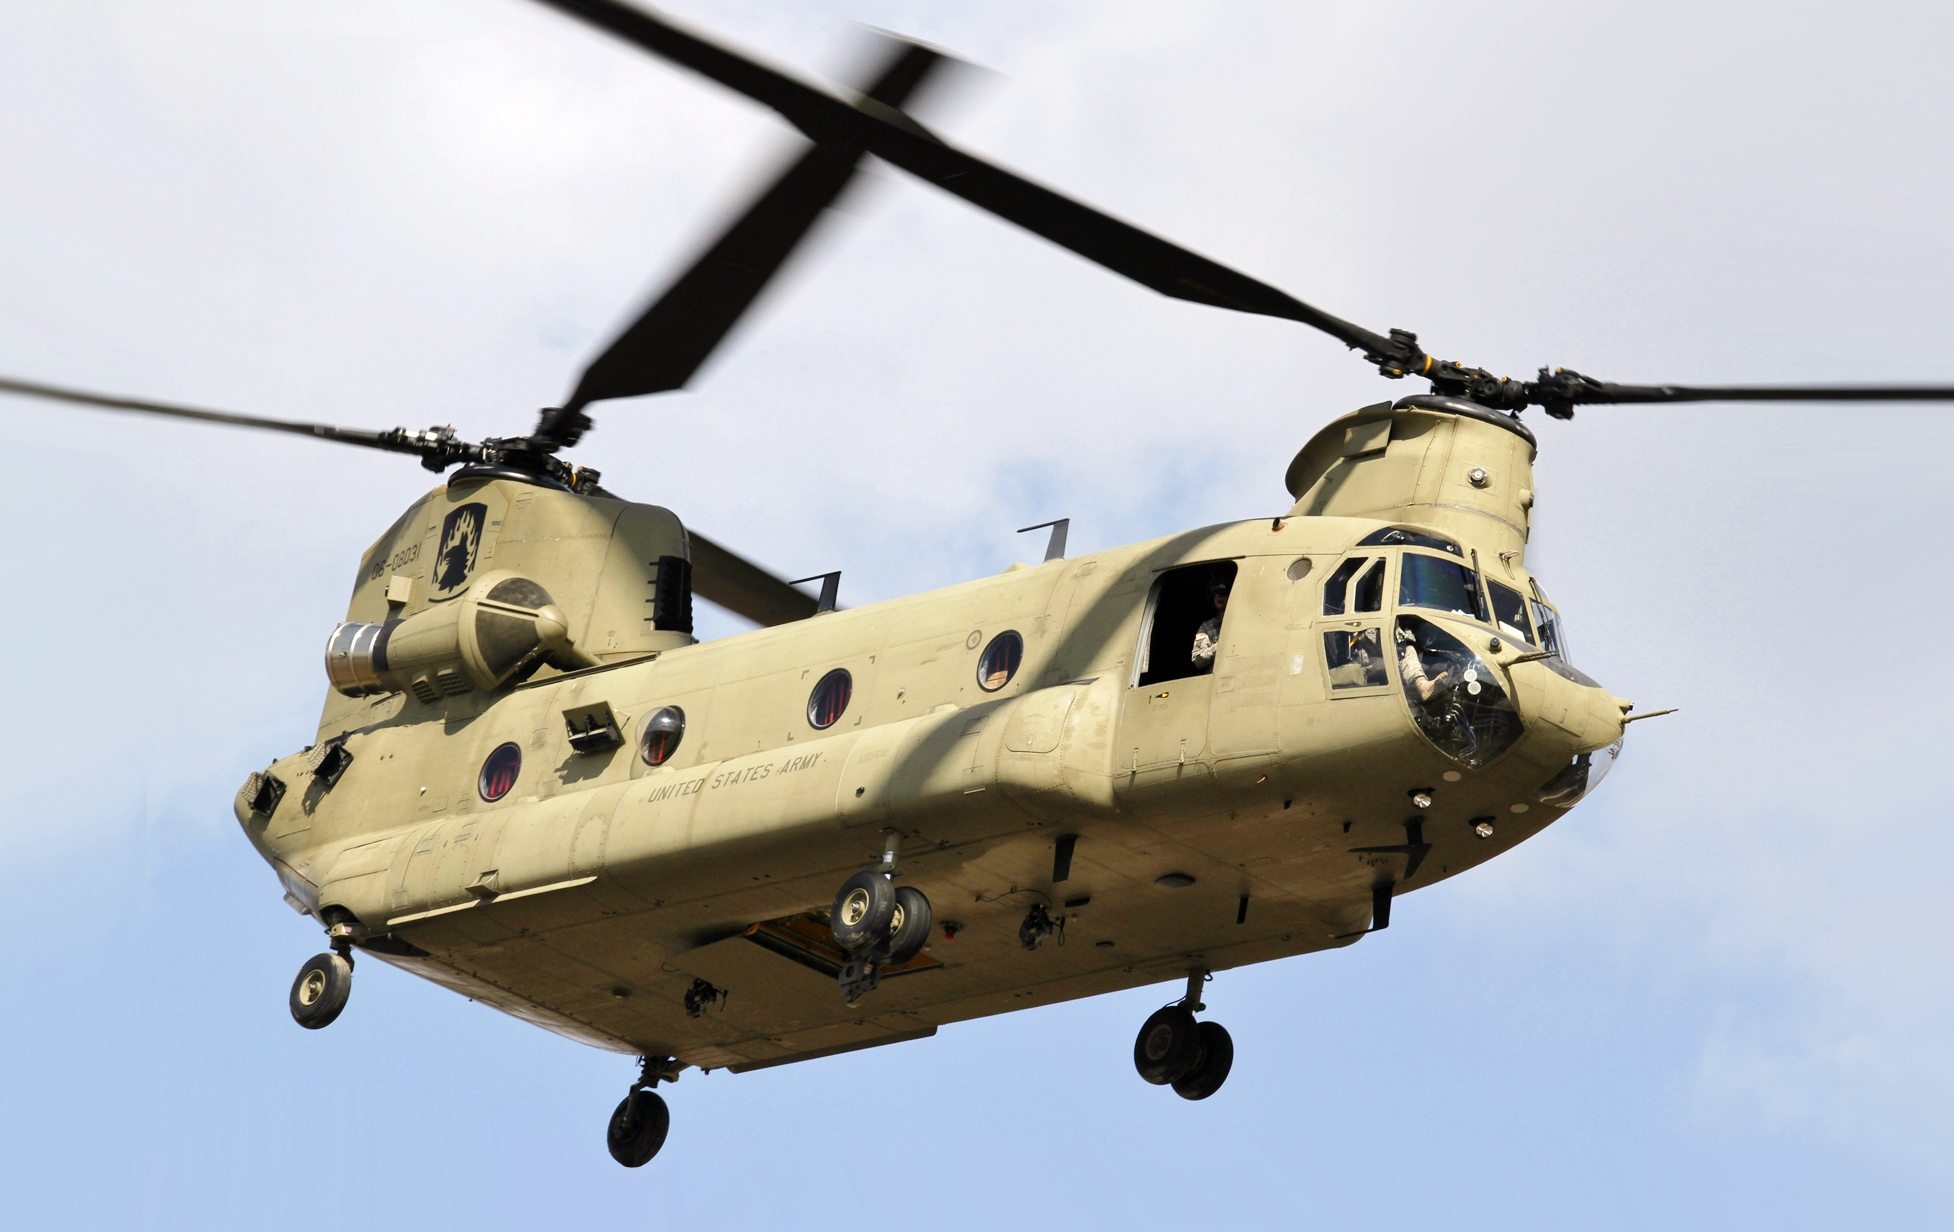 aupload.wikimedia.org_wikipedia_commons_0_03_CH_47_Chinook_helicopter_flyby.jpg